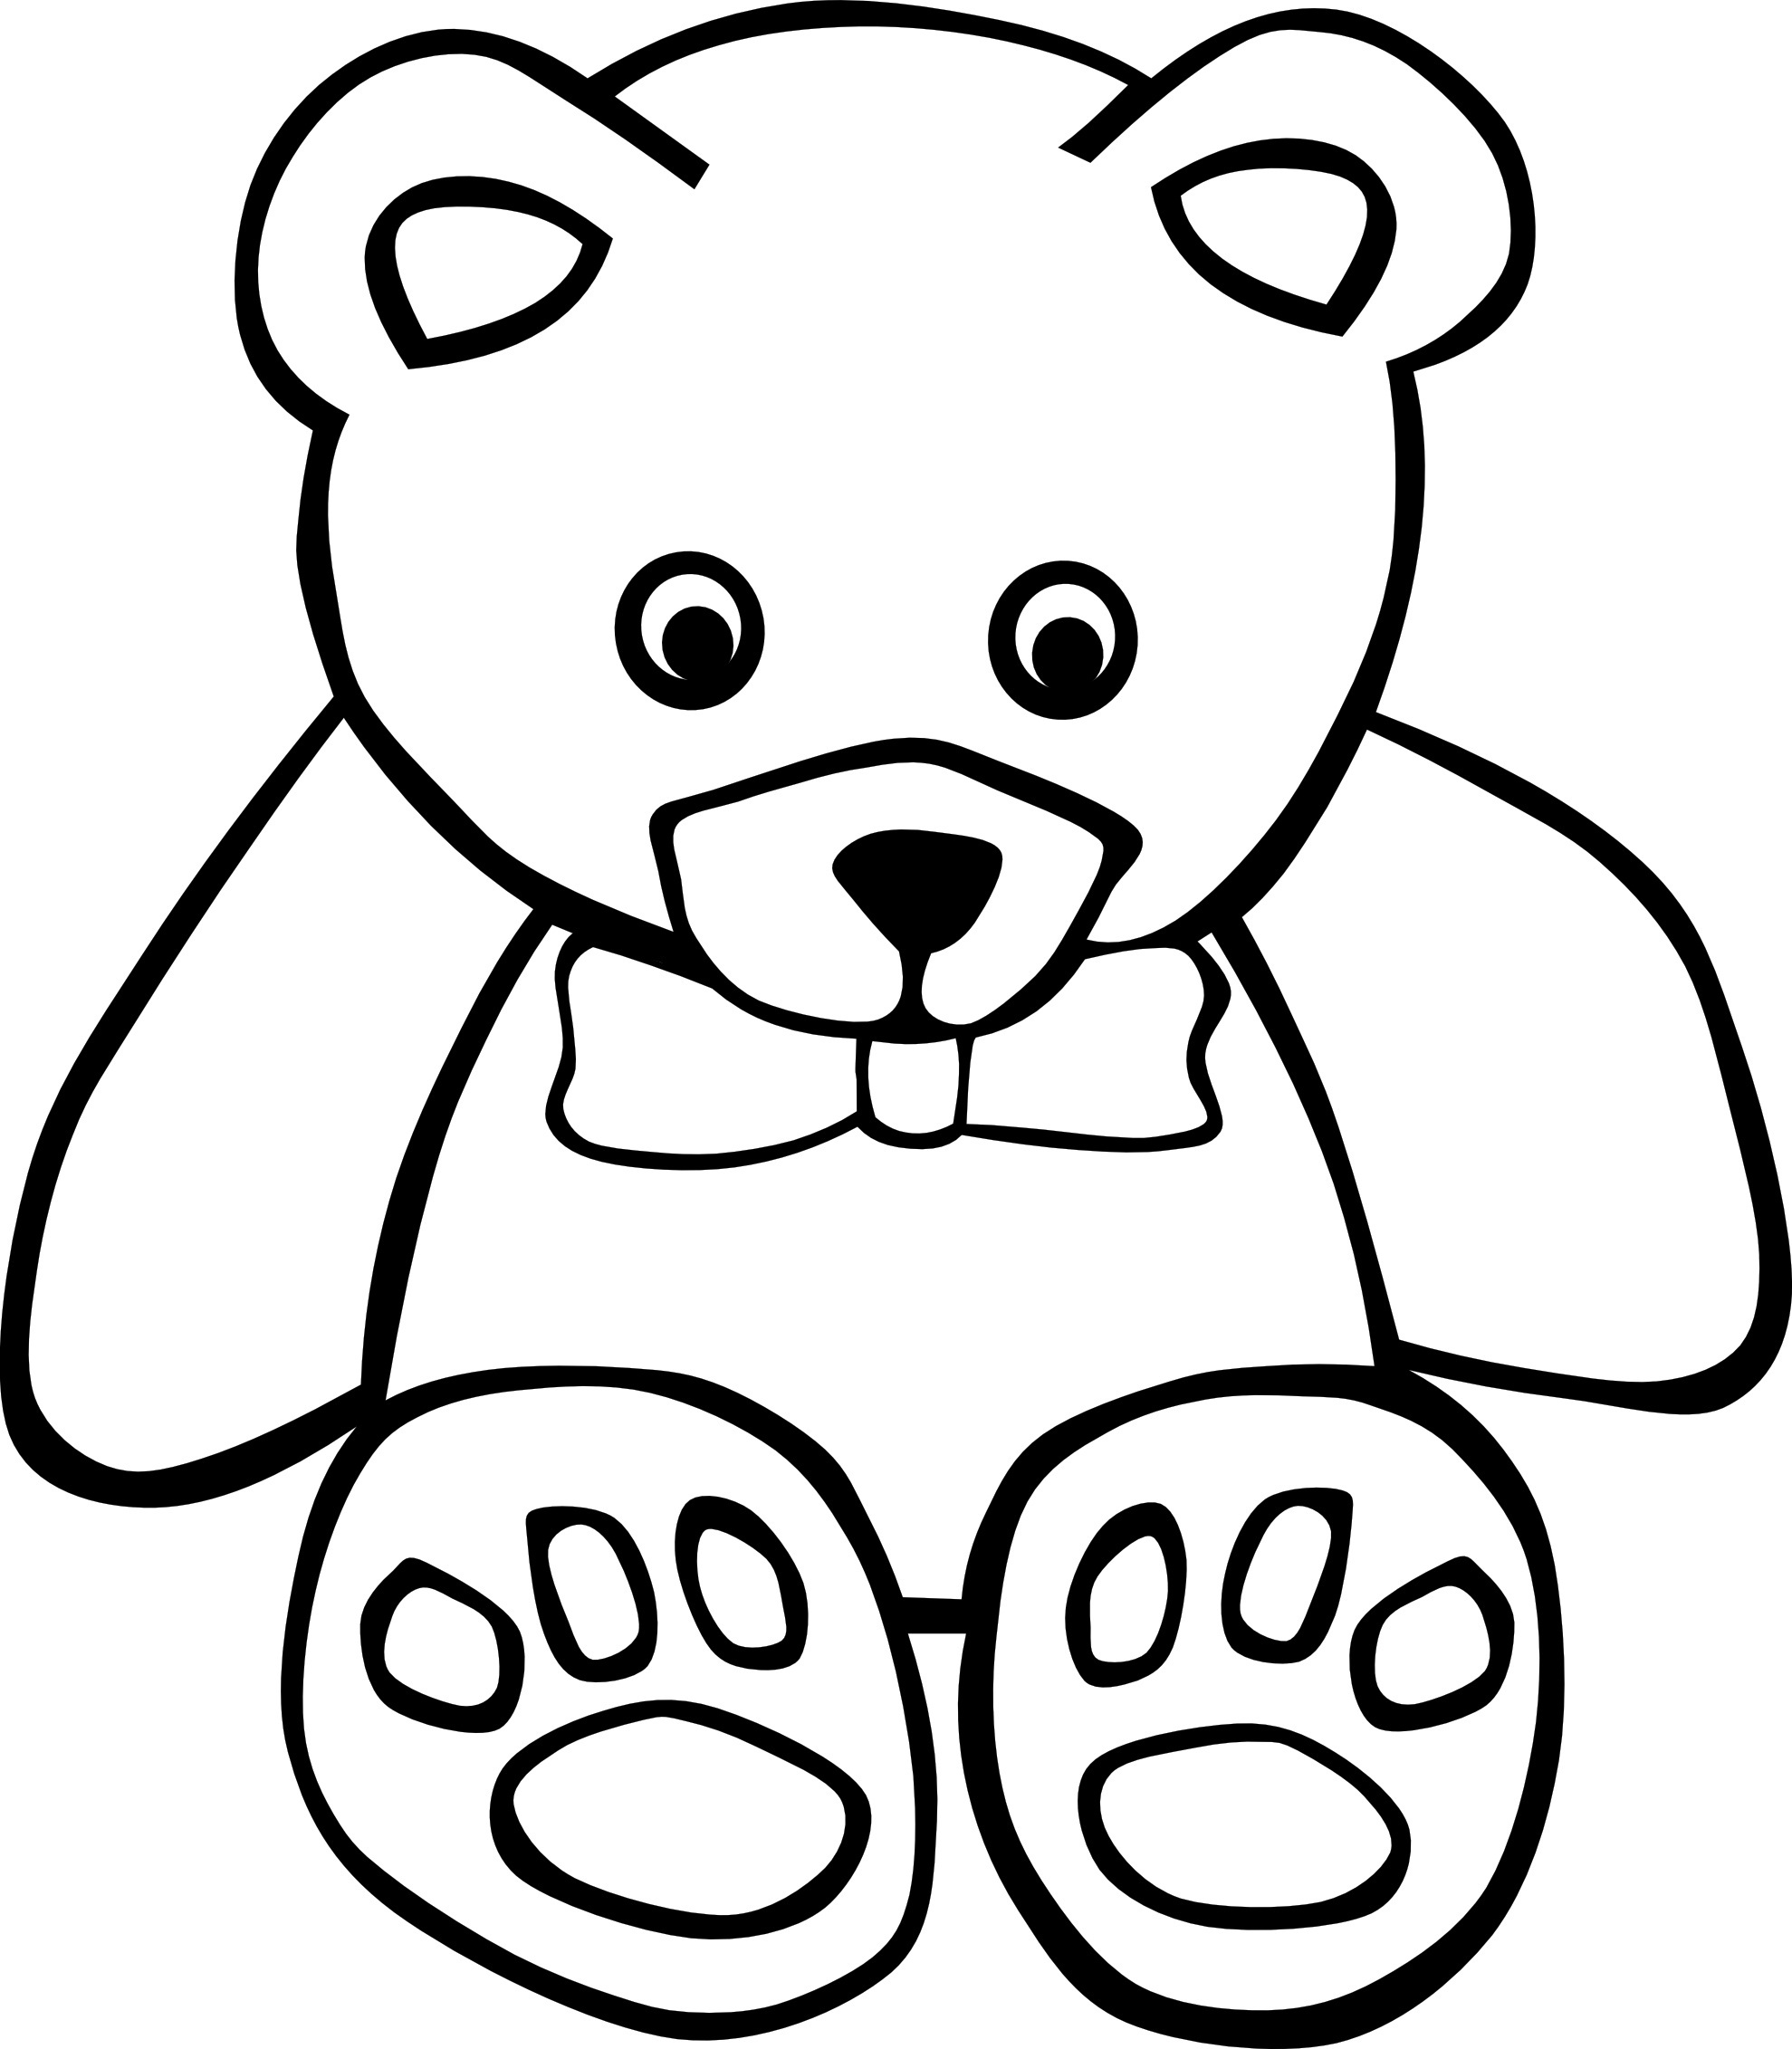 colouring teddy bear free printable teddy bear coloring pages for kids colouring bear teddy 1 1